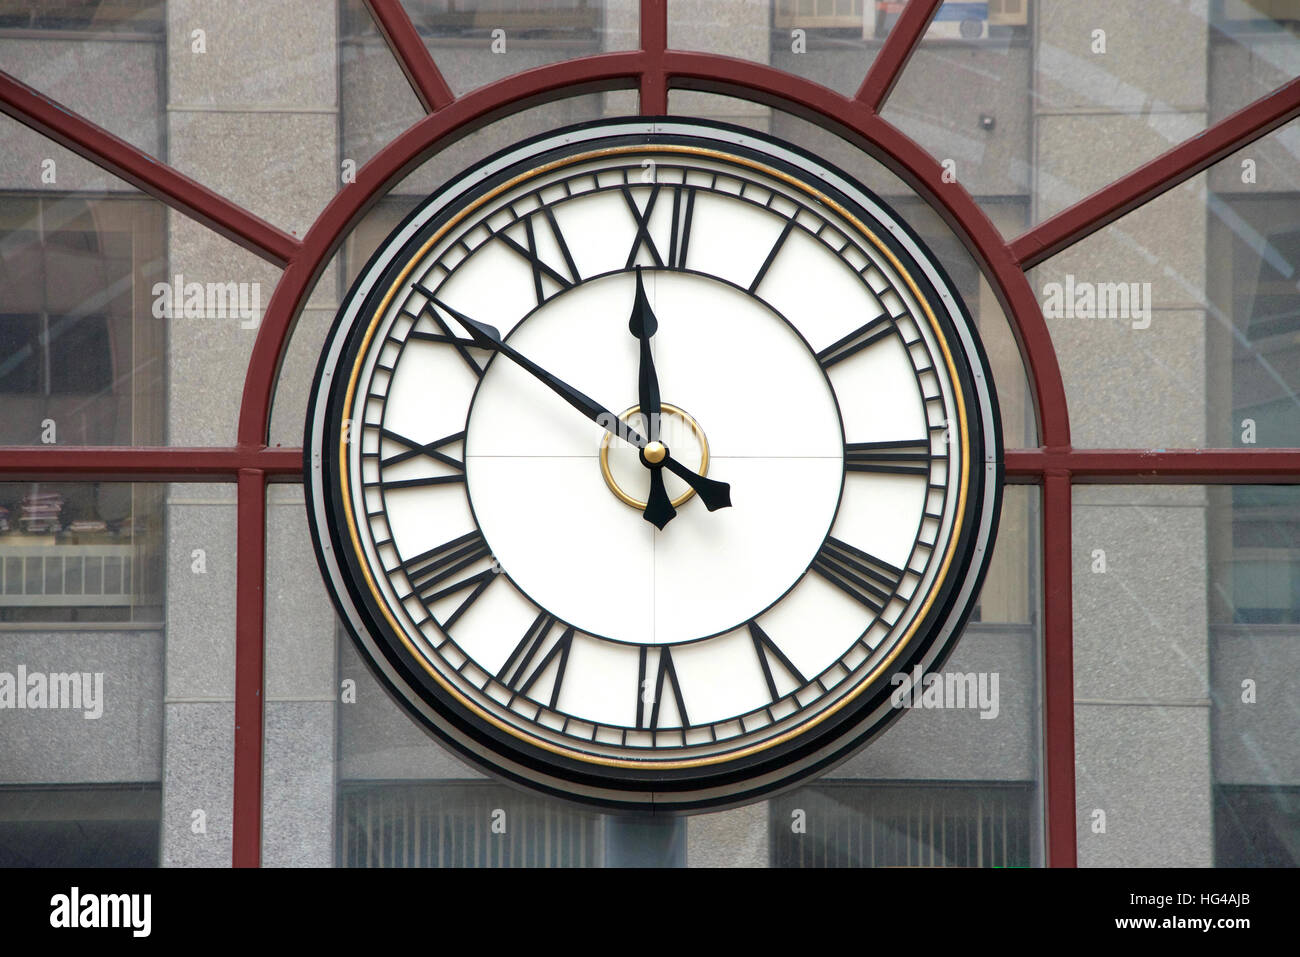 Clock with roman numerals for hours, hands at nine minutes to twelve o'clock on a glass wall, building in background - Stock Image